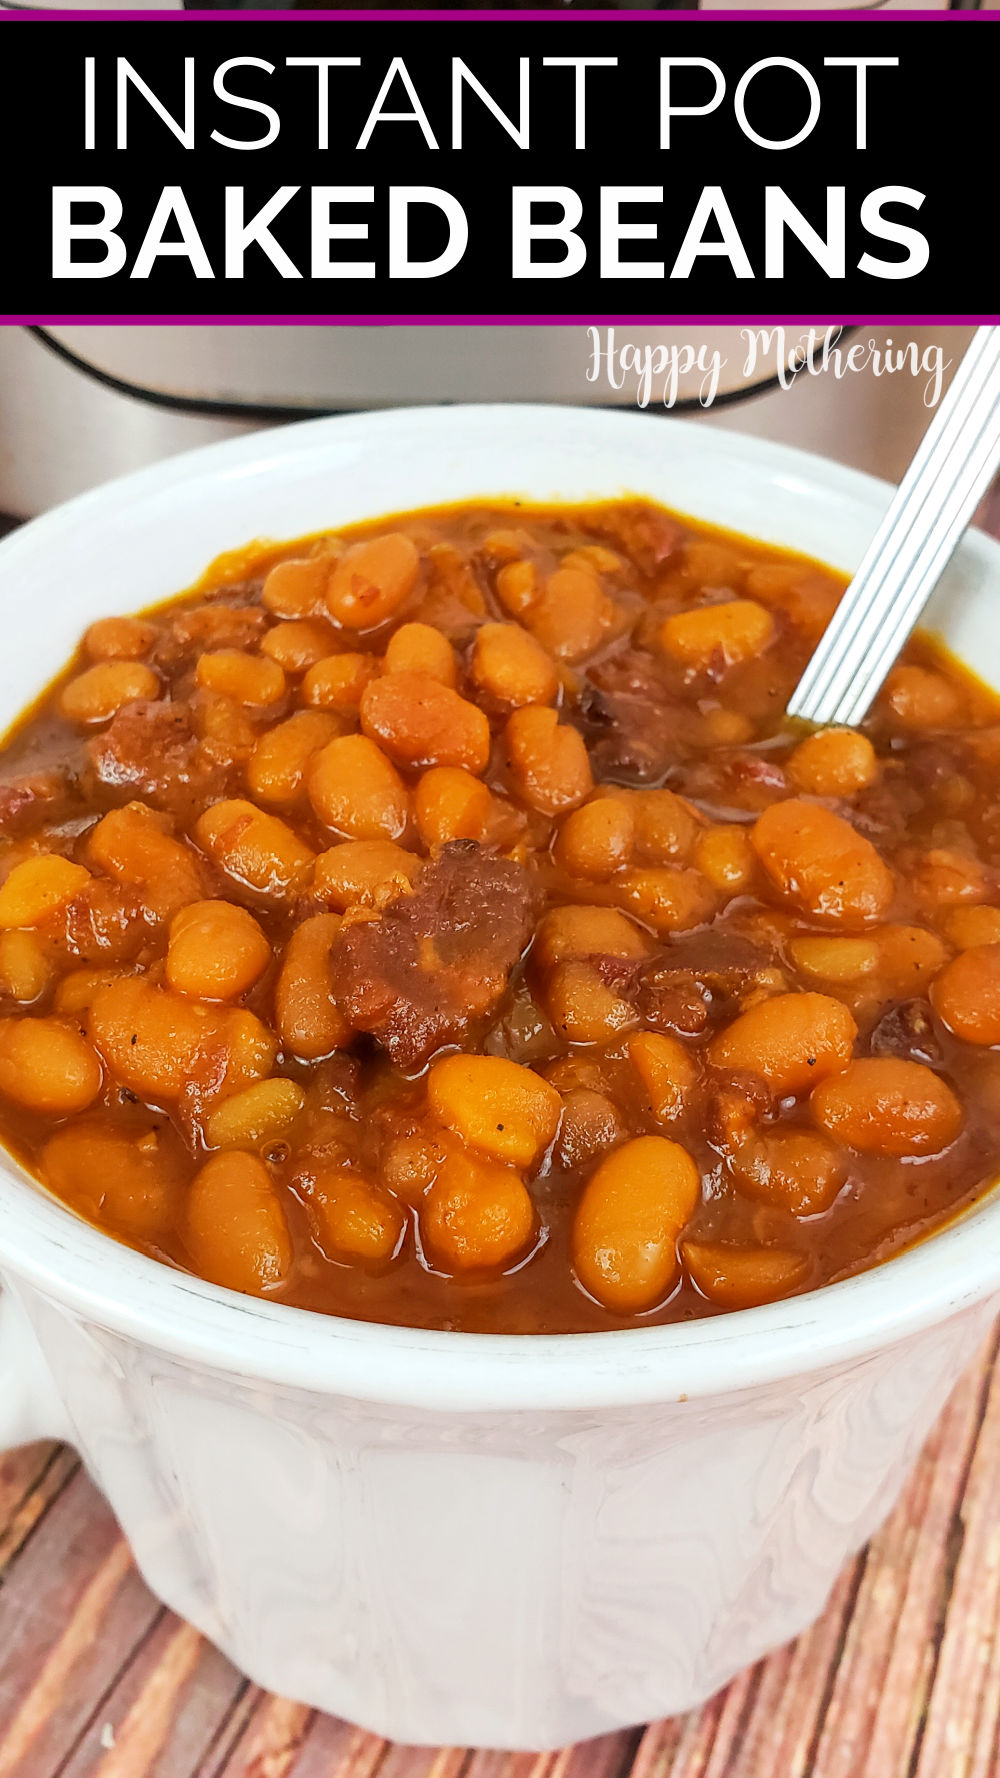 White soup bowl filled with homemade baked beans in front of Instant Pot they were cooked in.